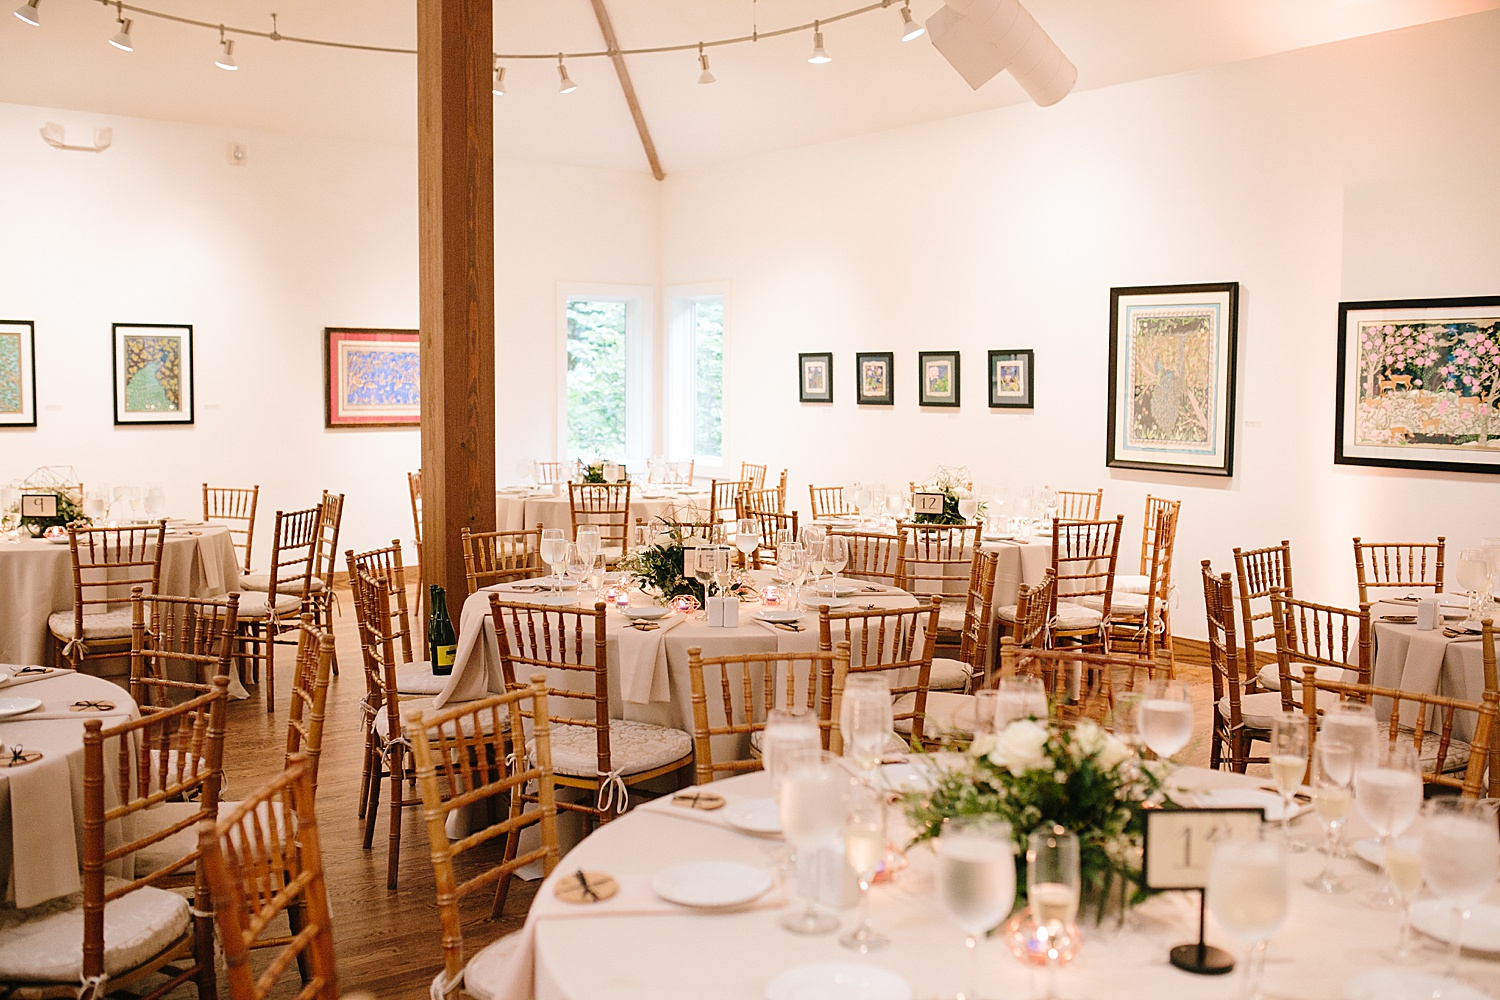 chelseachris_duke_art_gallery_wedding_image_077.jpg